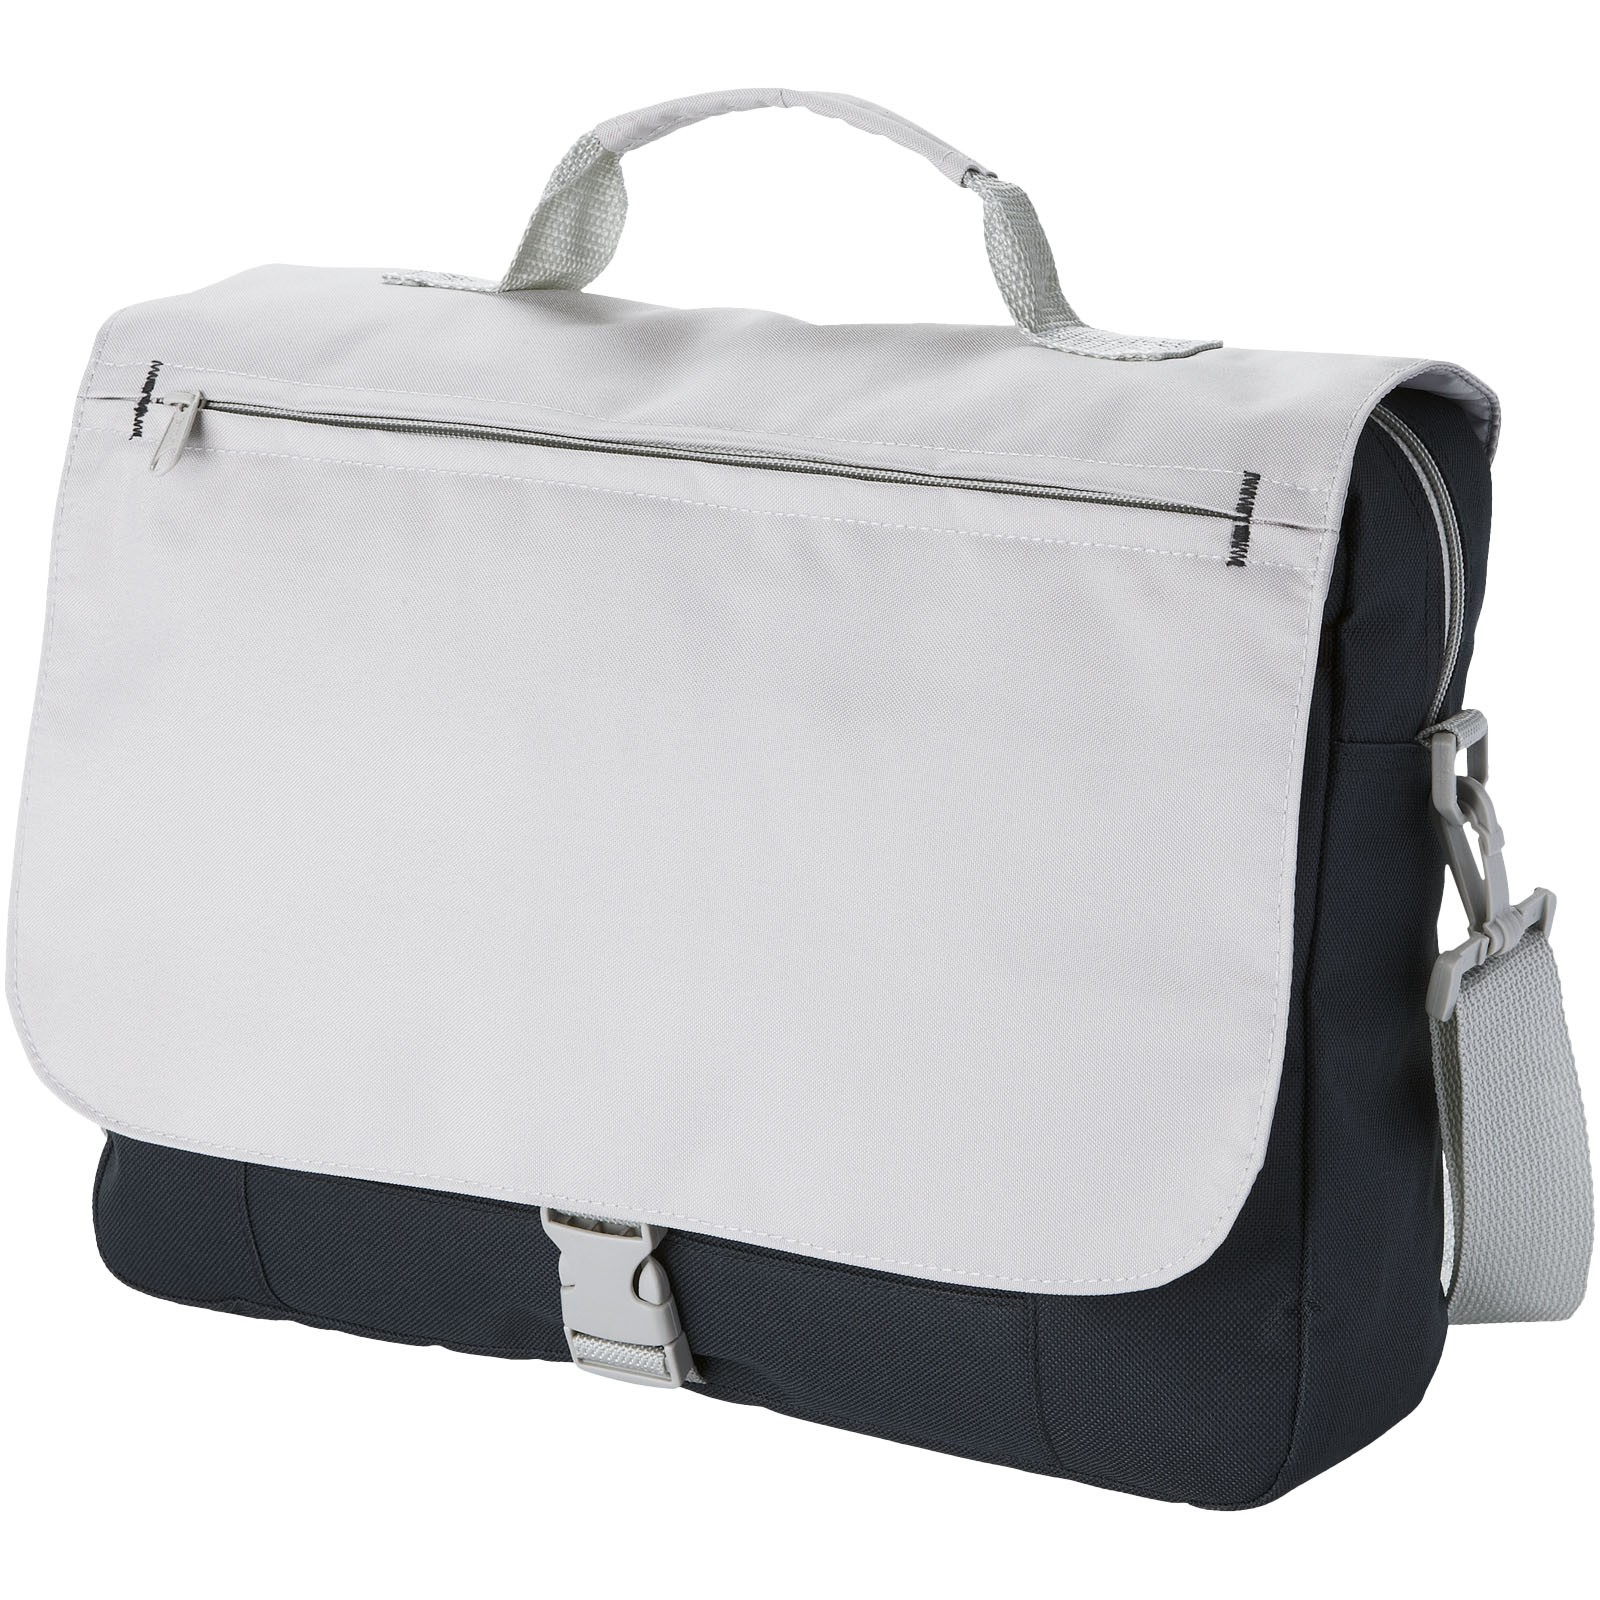 Pittsburgh conference bag - Charcoal / Light grey